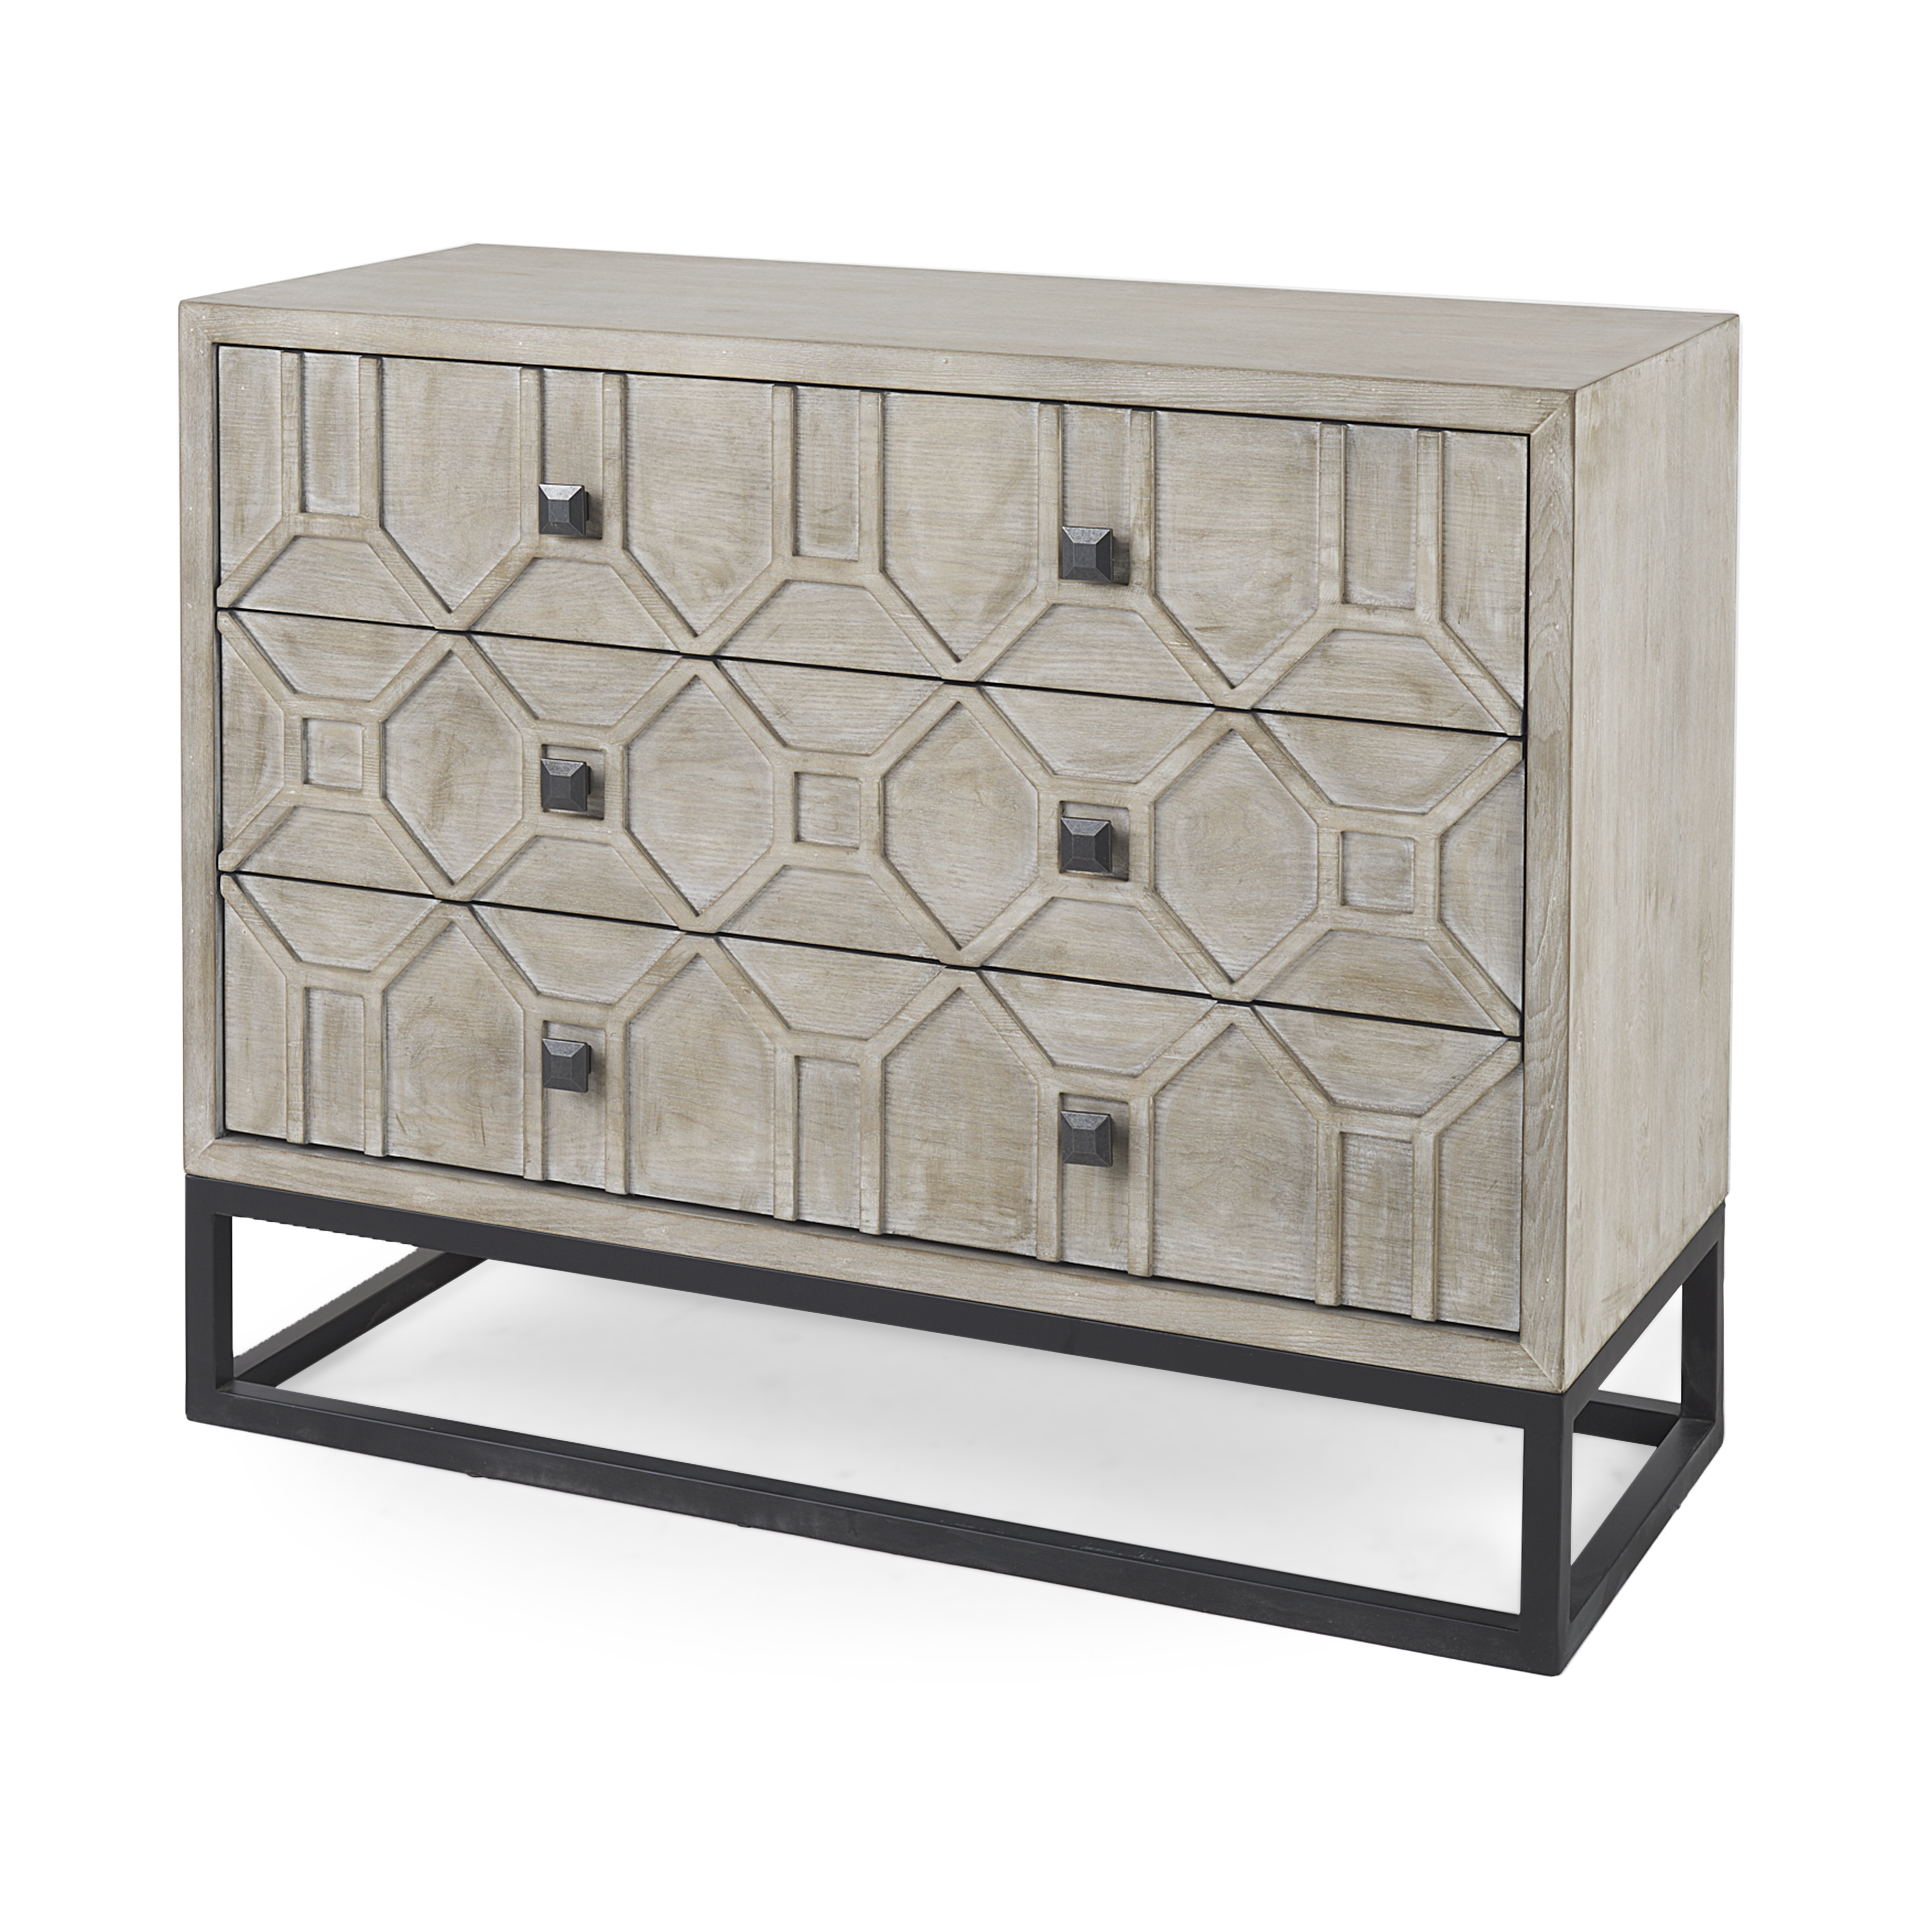 Genevieve I 20L x 20W Light Brown 20 Drawer Accent Cabinet